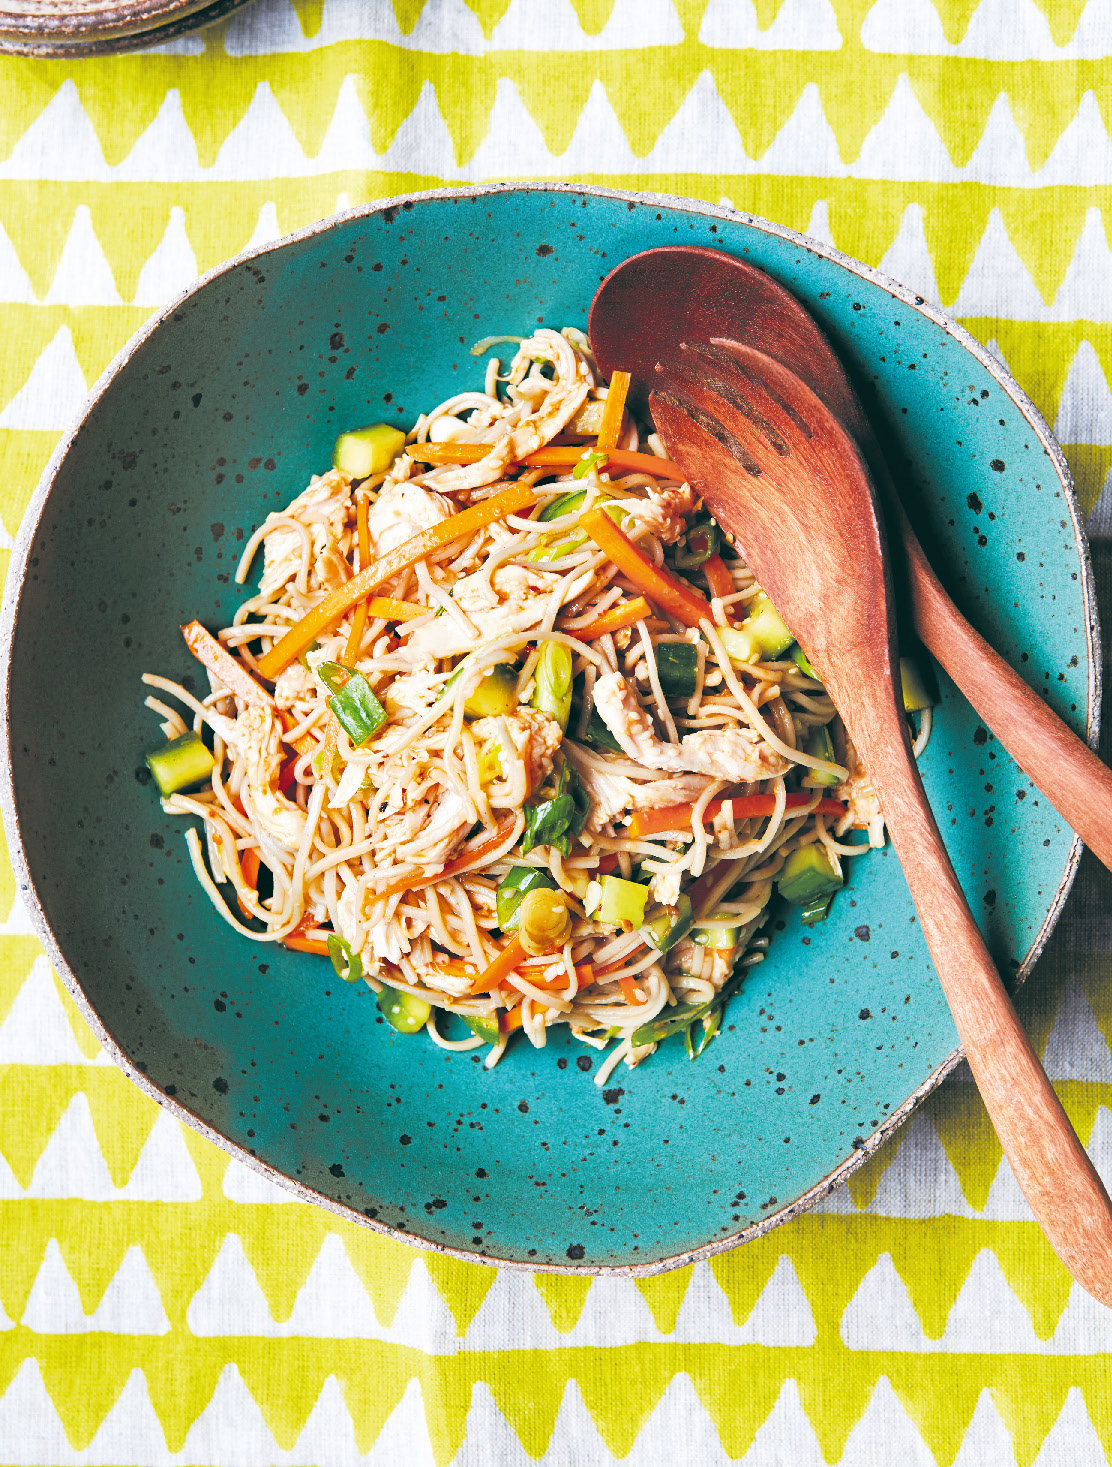 Chicken & miso noodle salad